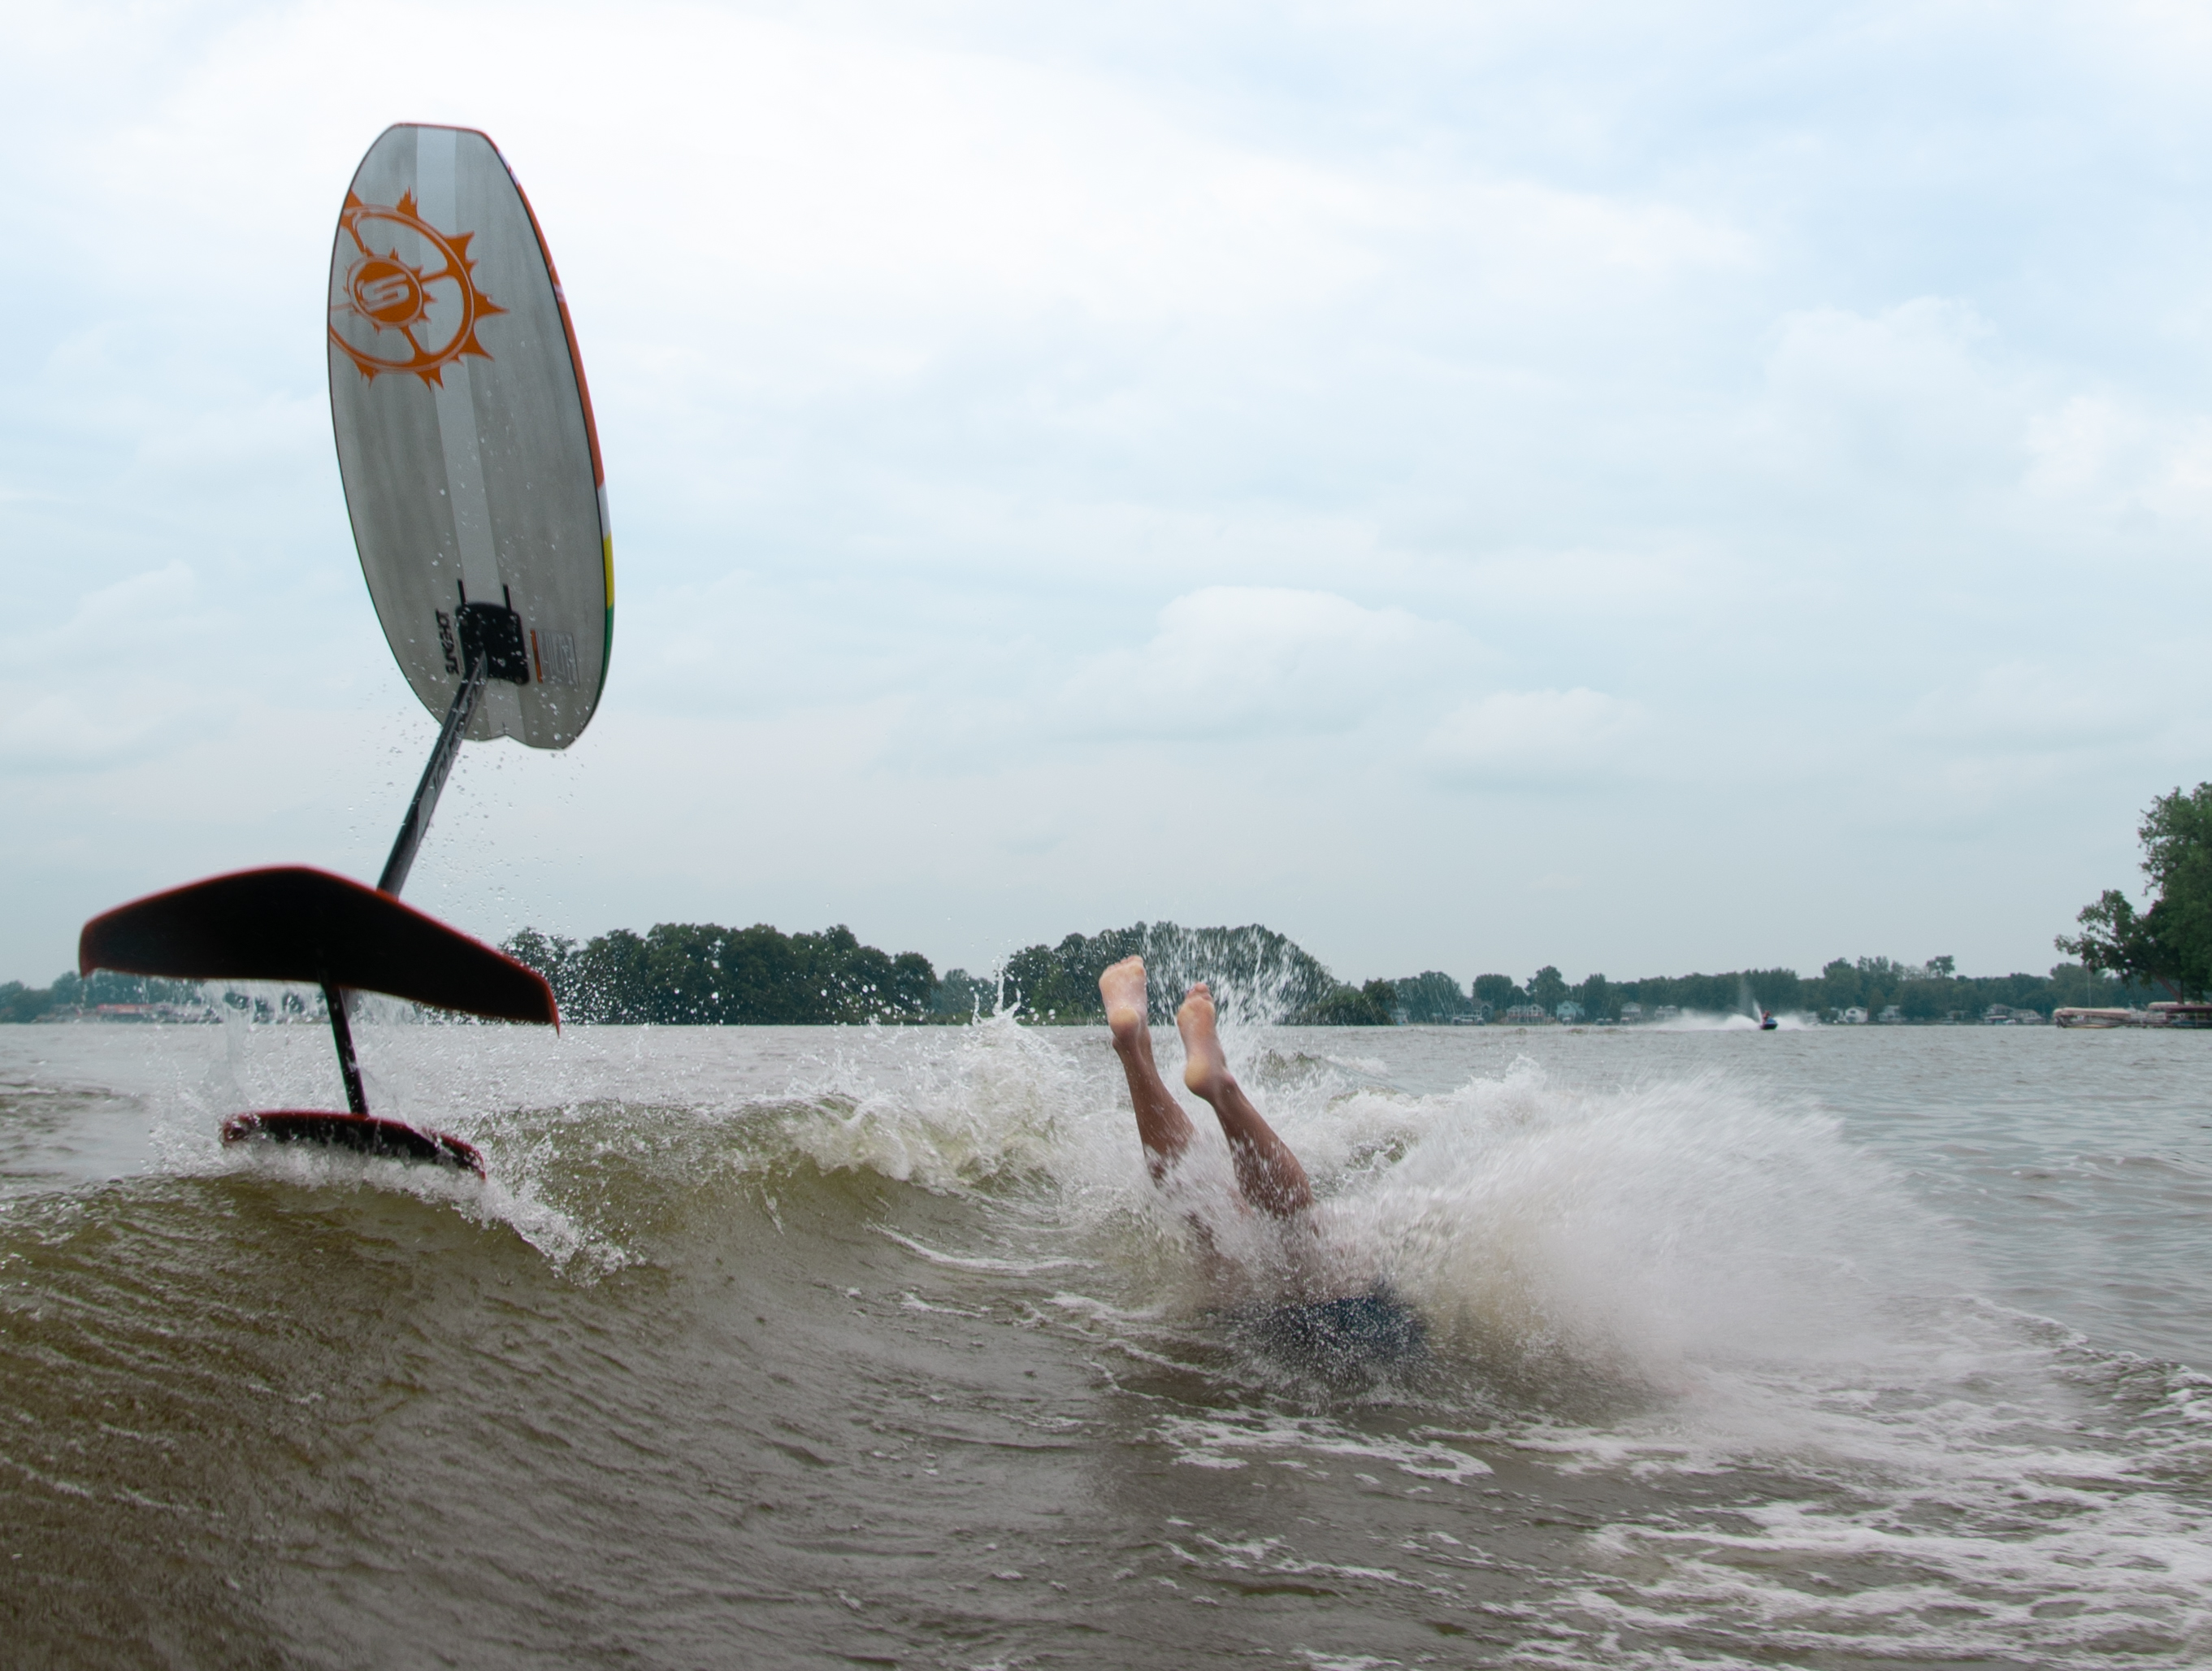 A surfboard with a foil popping into the air while the rider is upended into the water